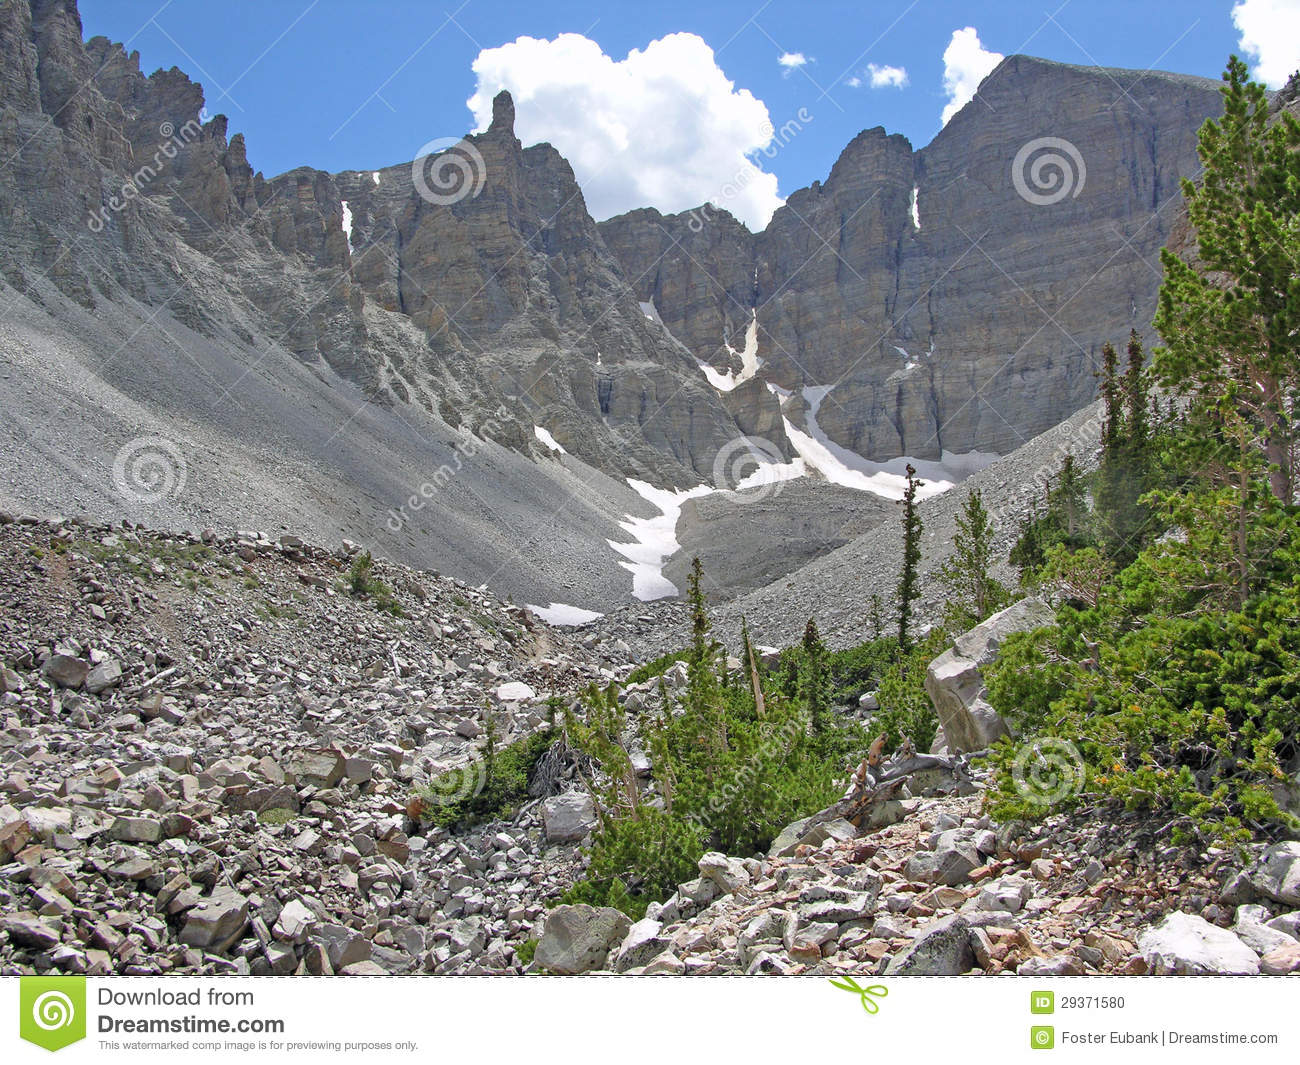 Great basin national park clipart 20 free Cliparts | Download images ... banner transparent download